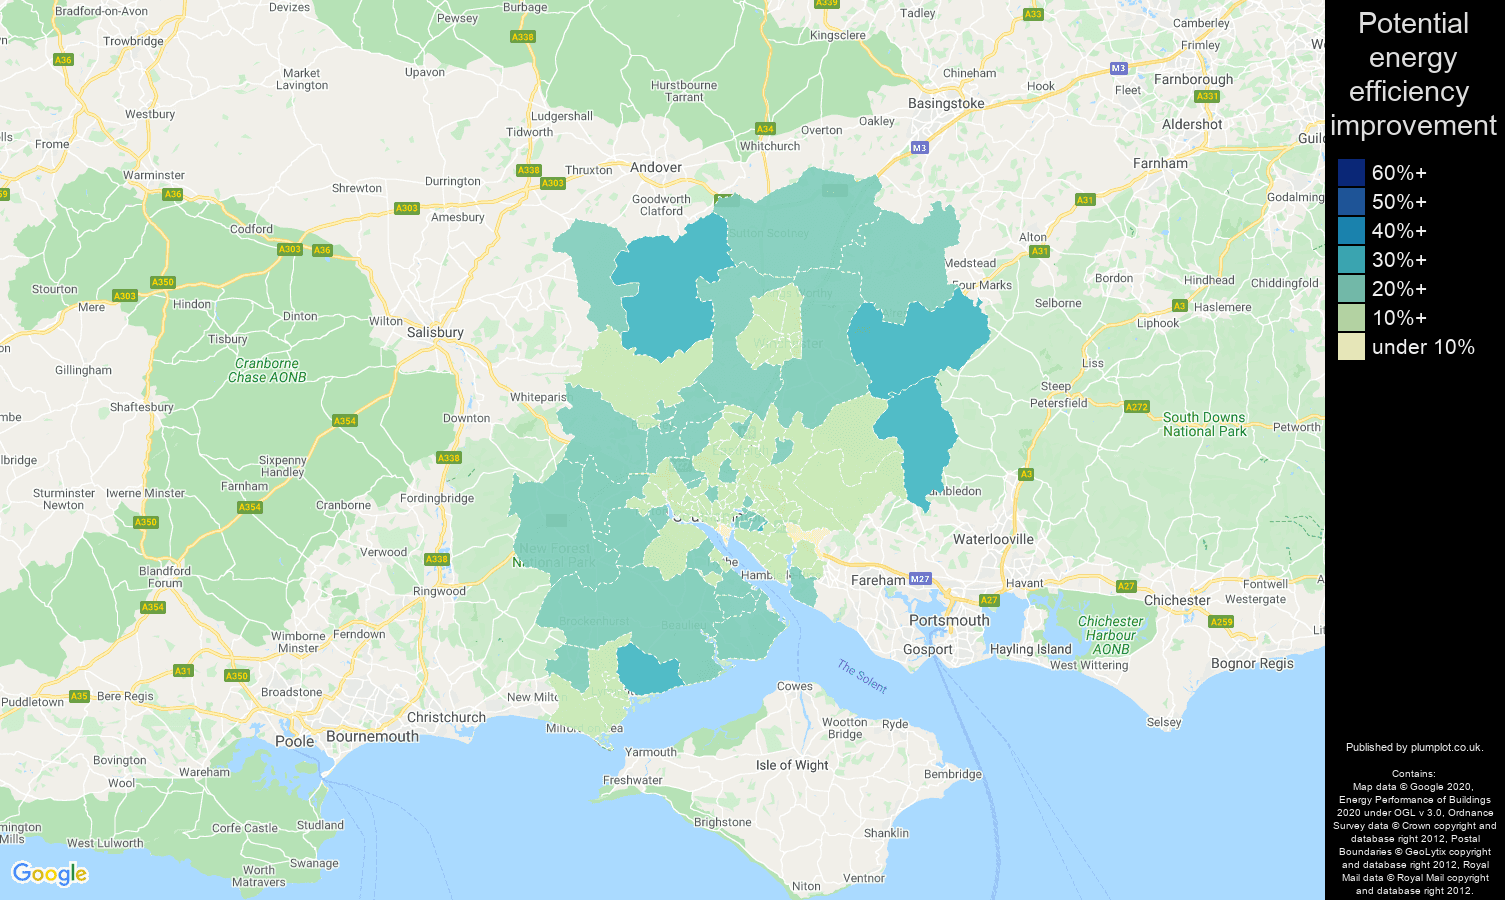 Southampton map of potential energy efficiency improvement of properties